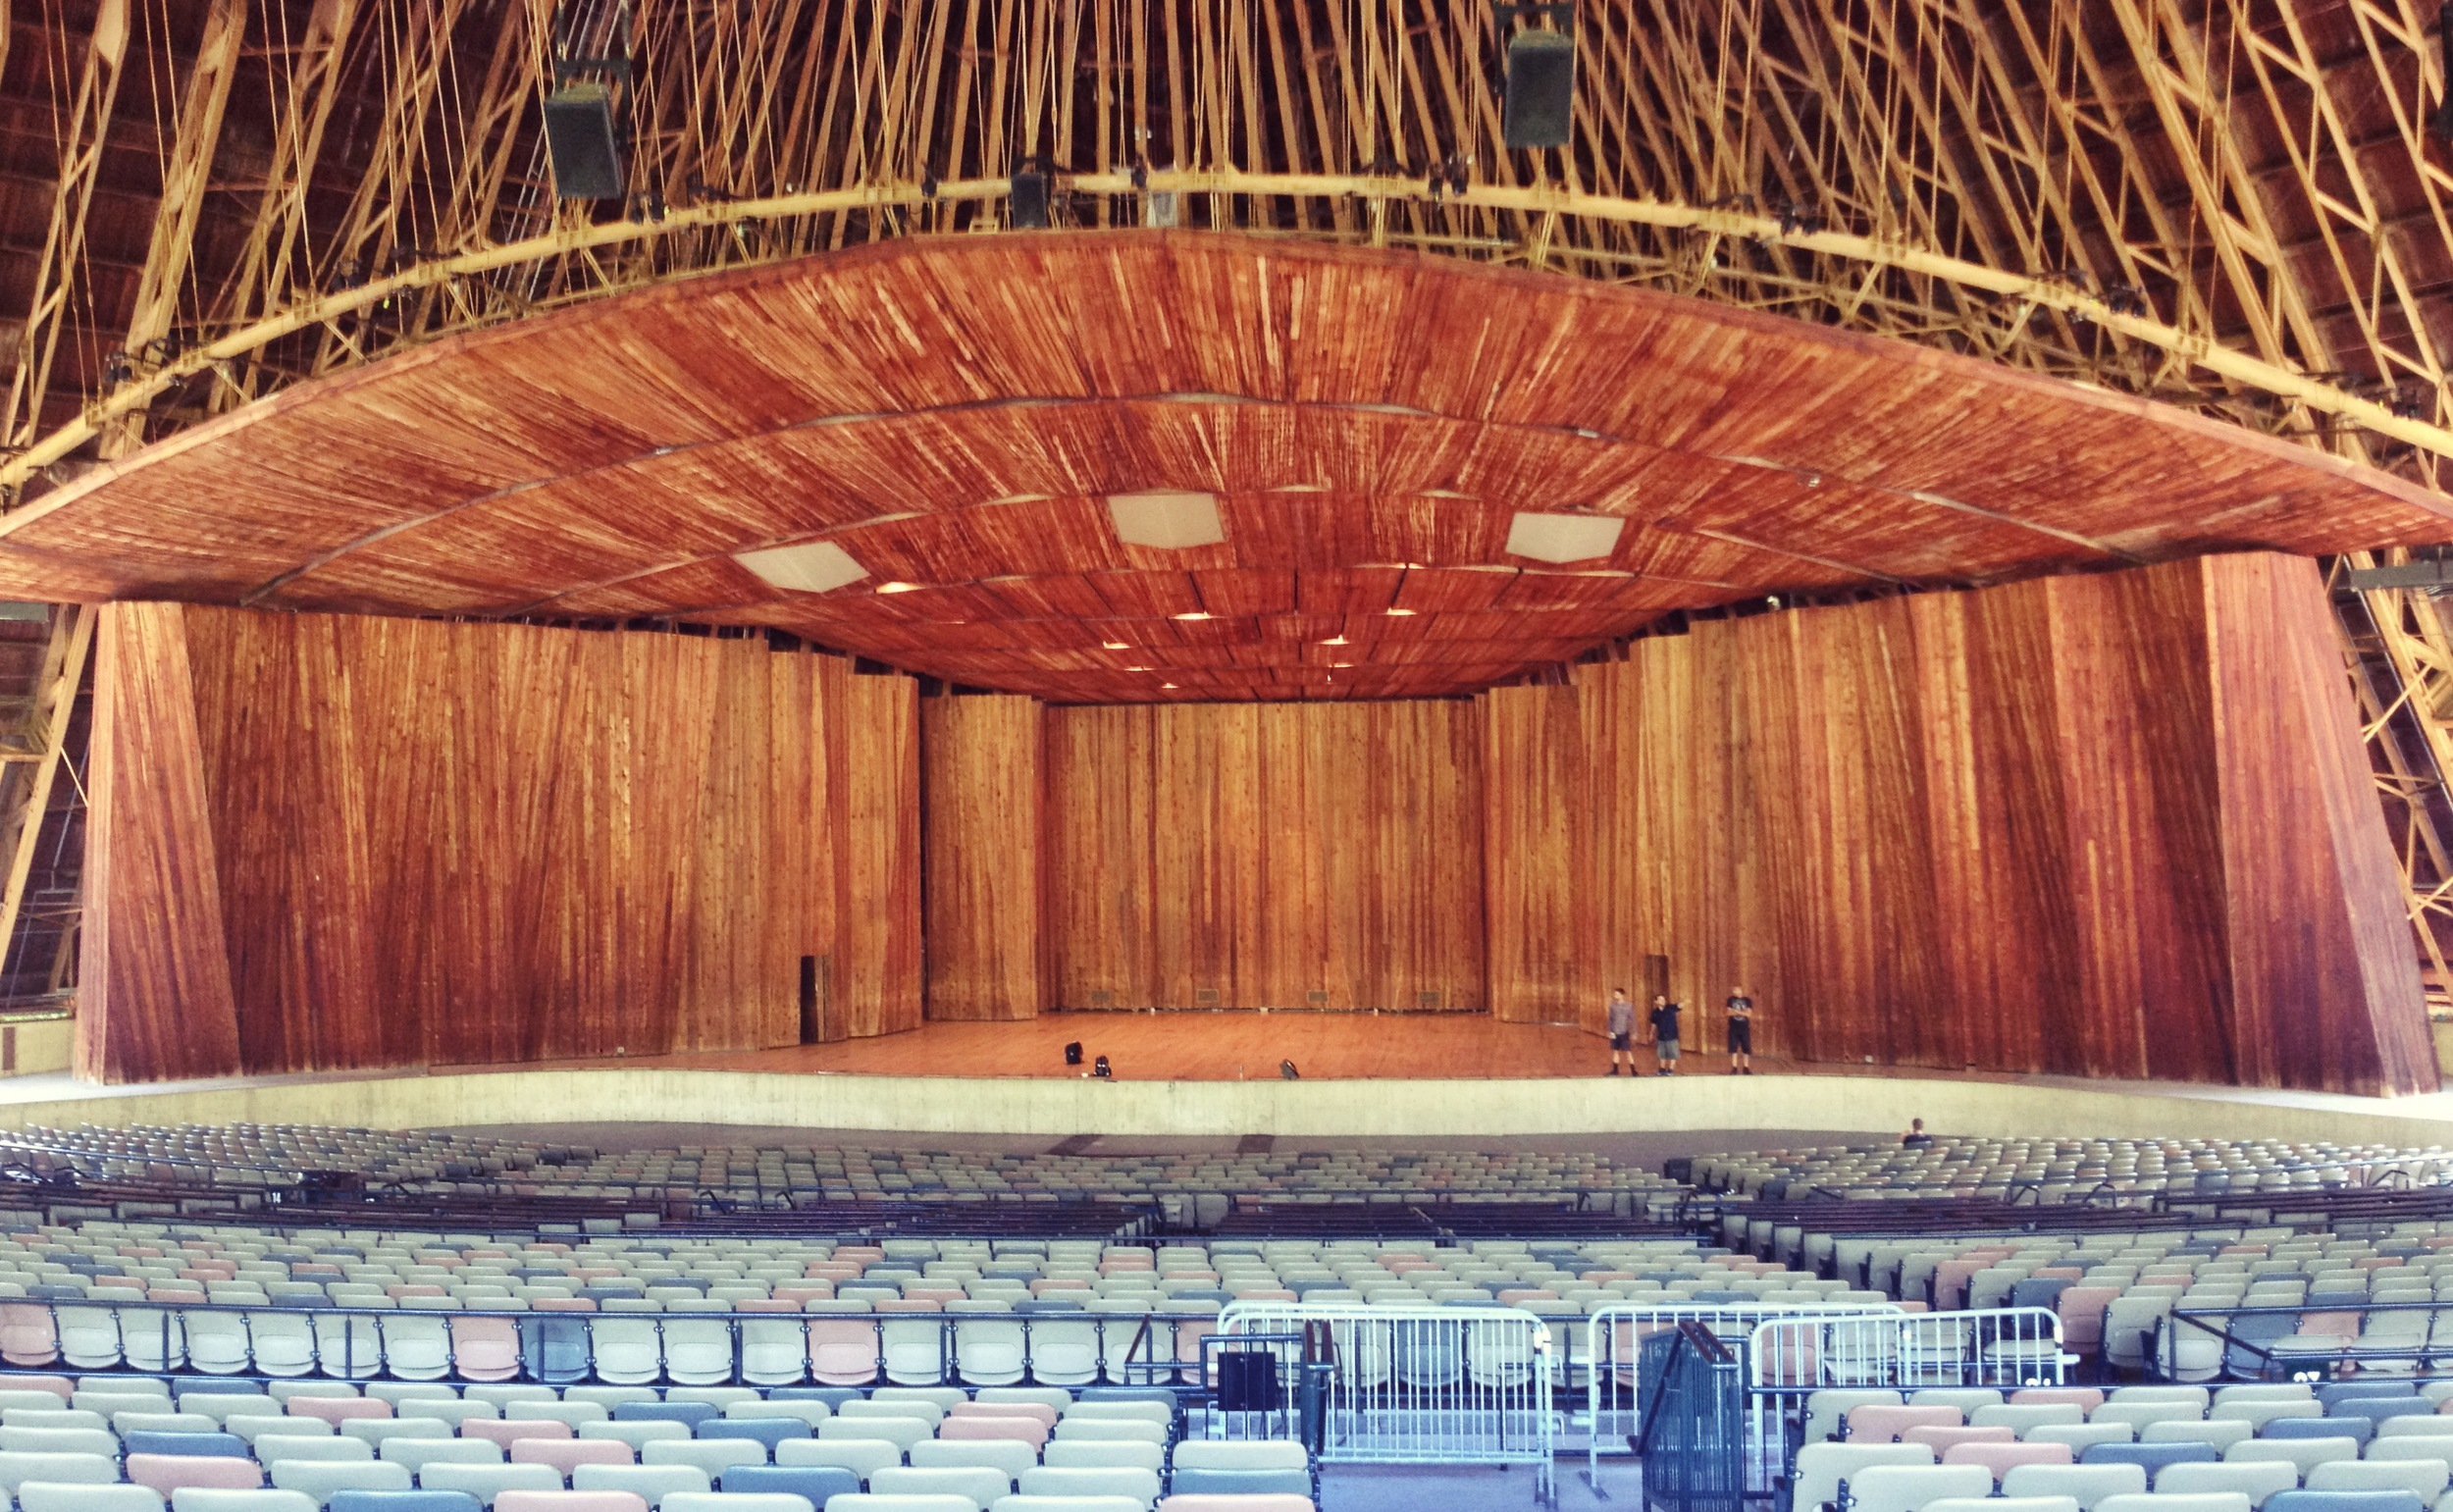 The beautiful amphitheater at the Blossom Music Center in Cleveland, OH.